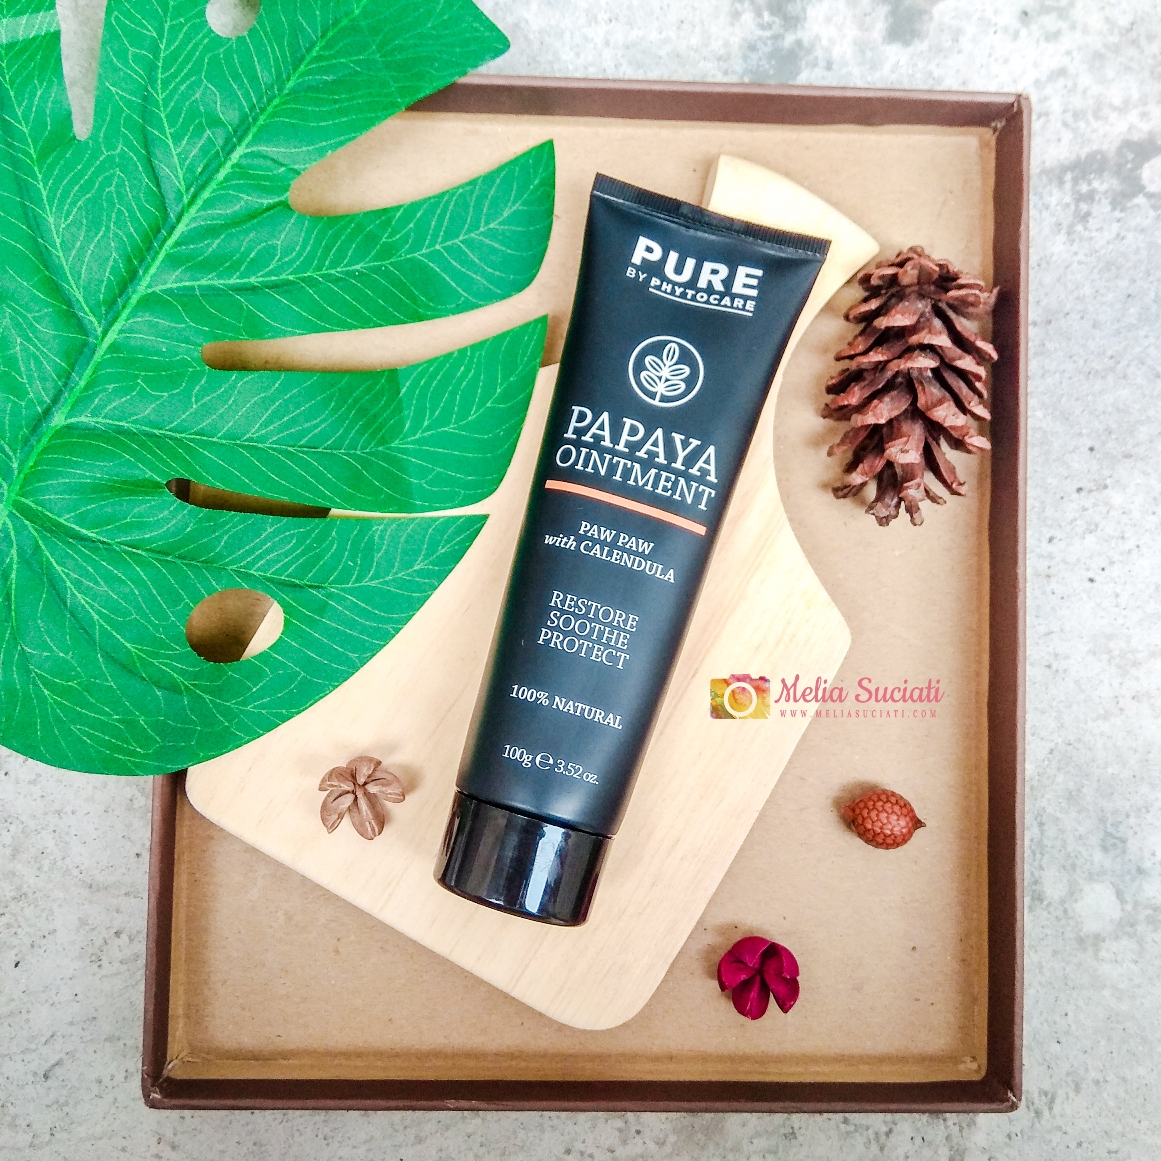 [REVIEW] PURE PAPAYA OINTMENT WITH CALENDULA